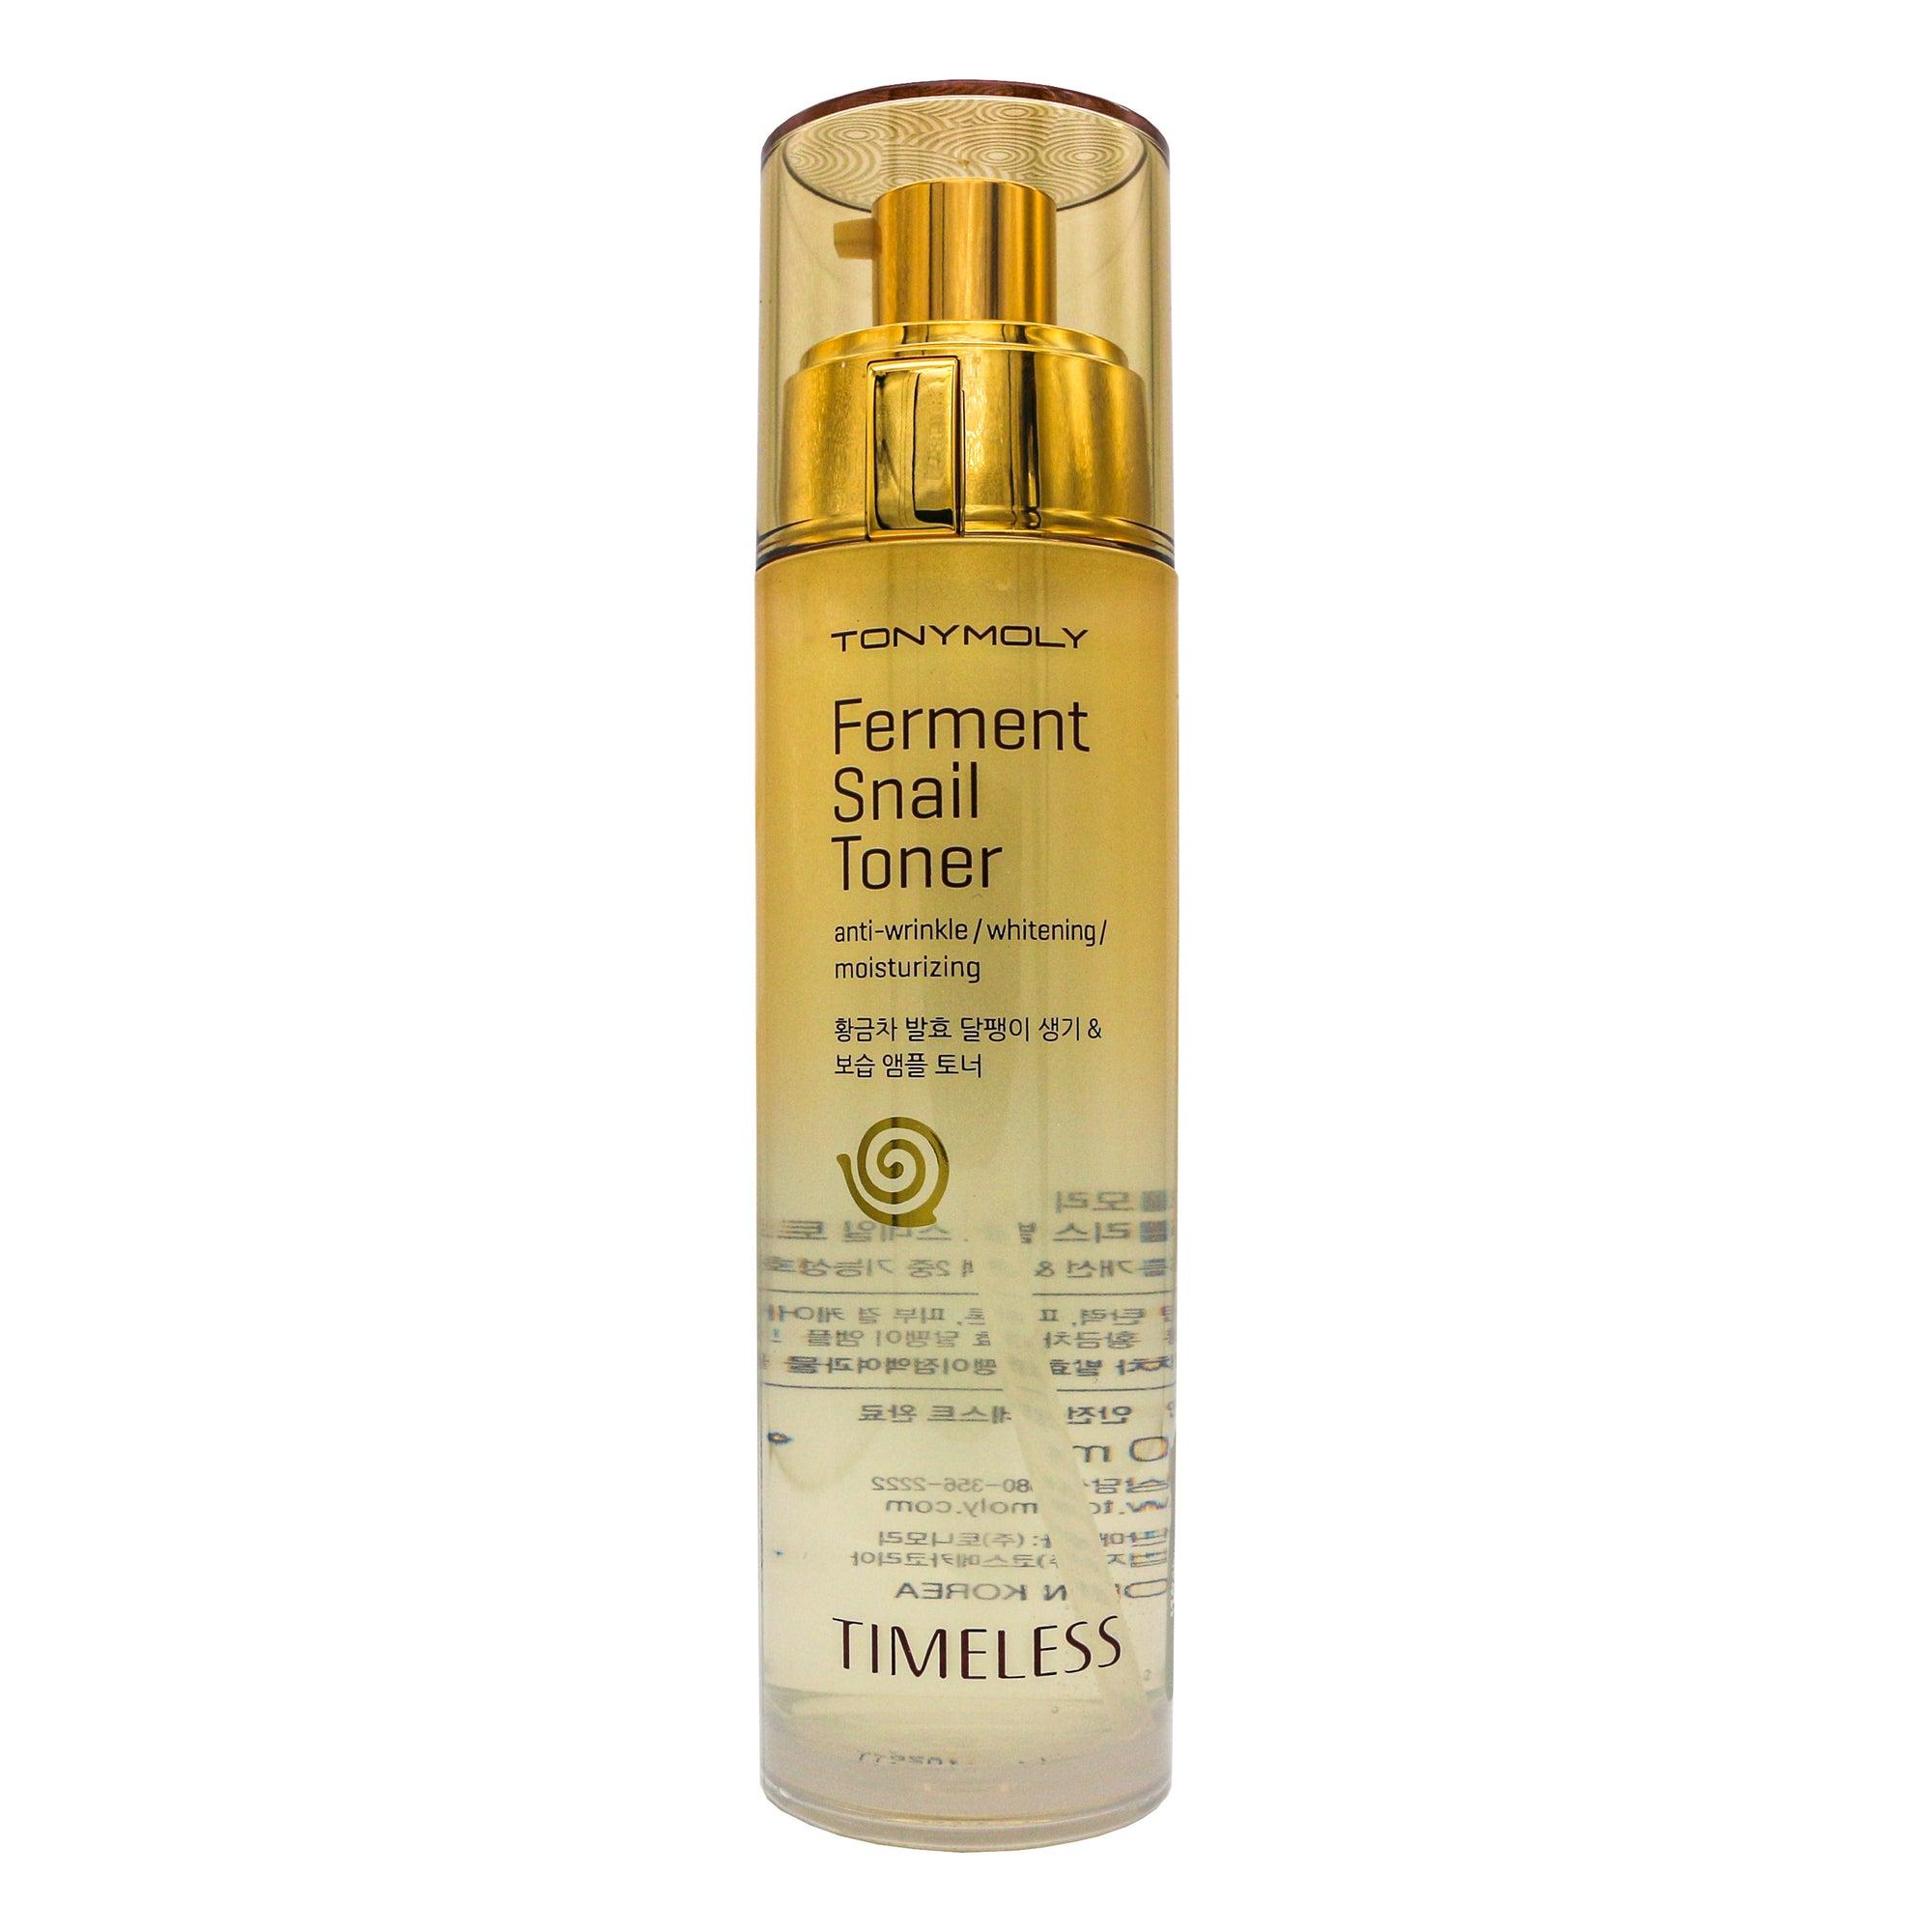 TONYMOLY Timeless Ferment Snail Toner 140ml | Korean Skin Care